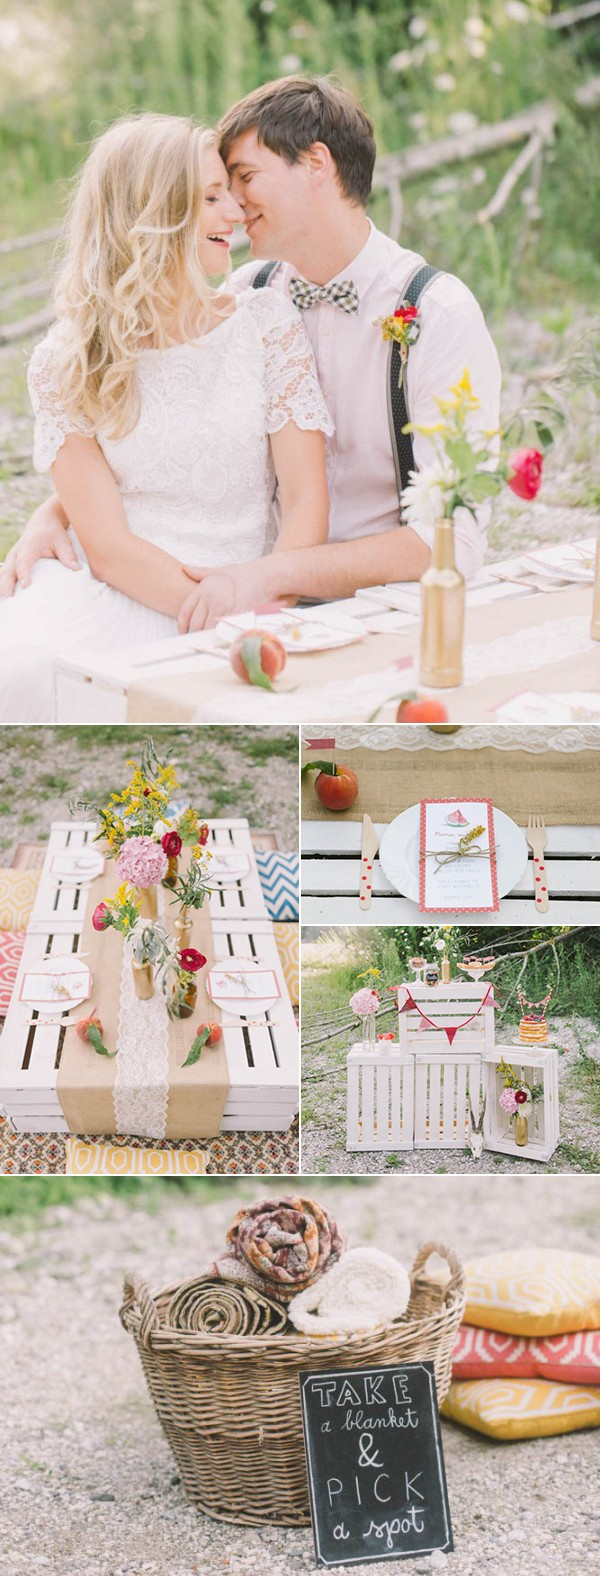 5 Of Our Favorite Picnic Weddings To Inspire Your Summer Soire